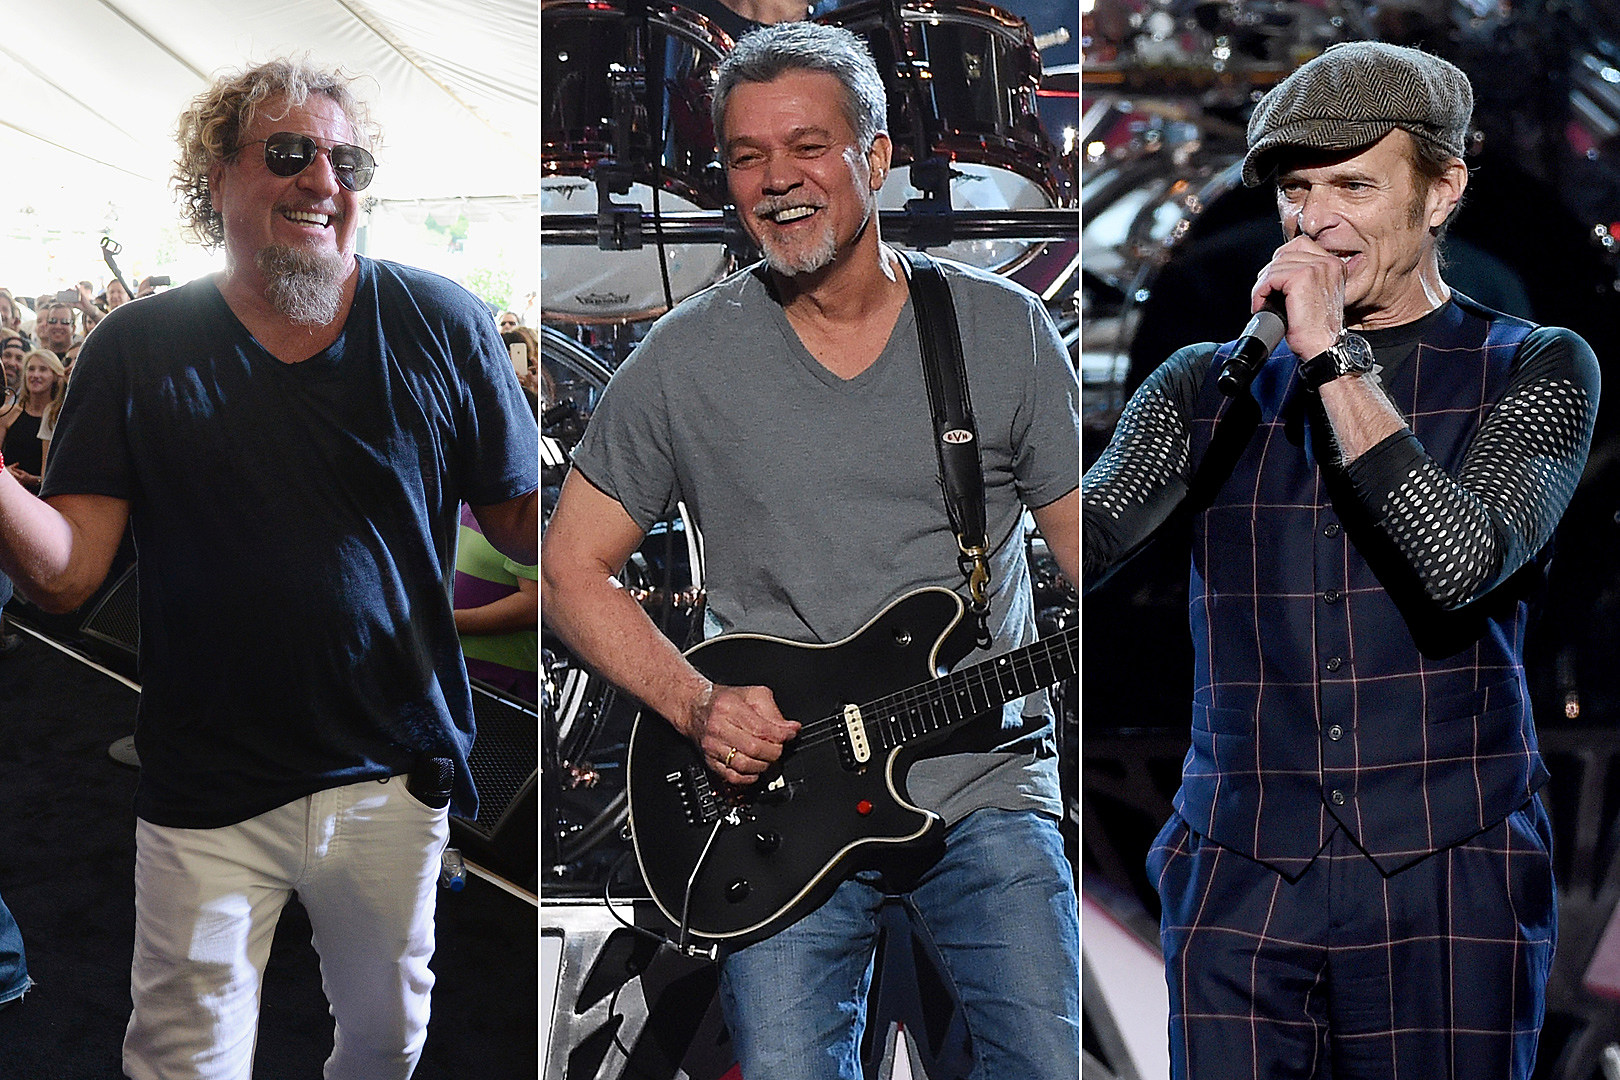 Sammy Hagar: 'I Would Only Do' Van Halen Reunion 'With Sam and Dave'